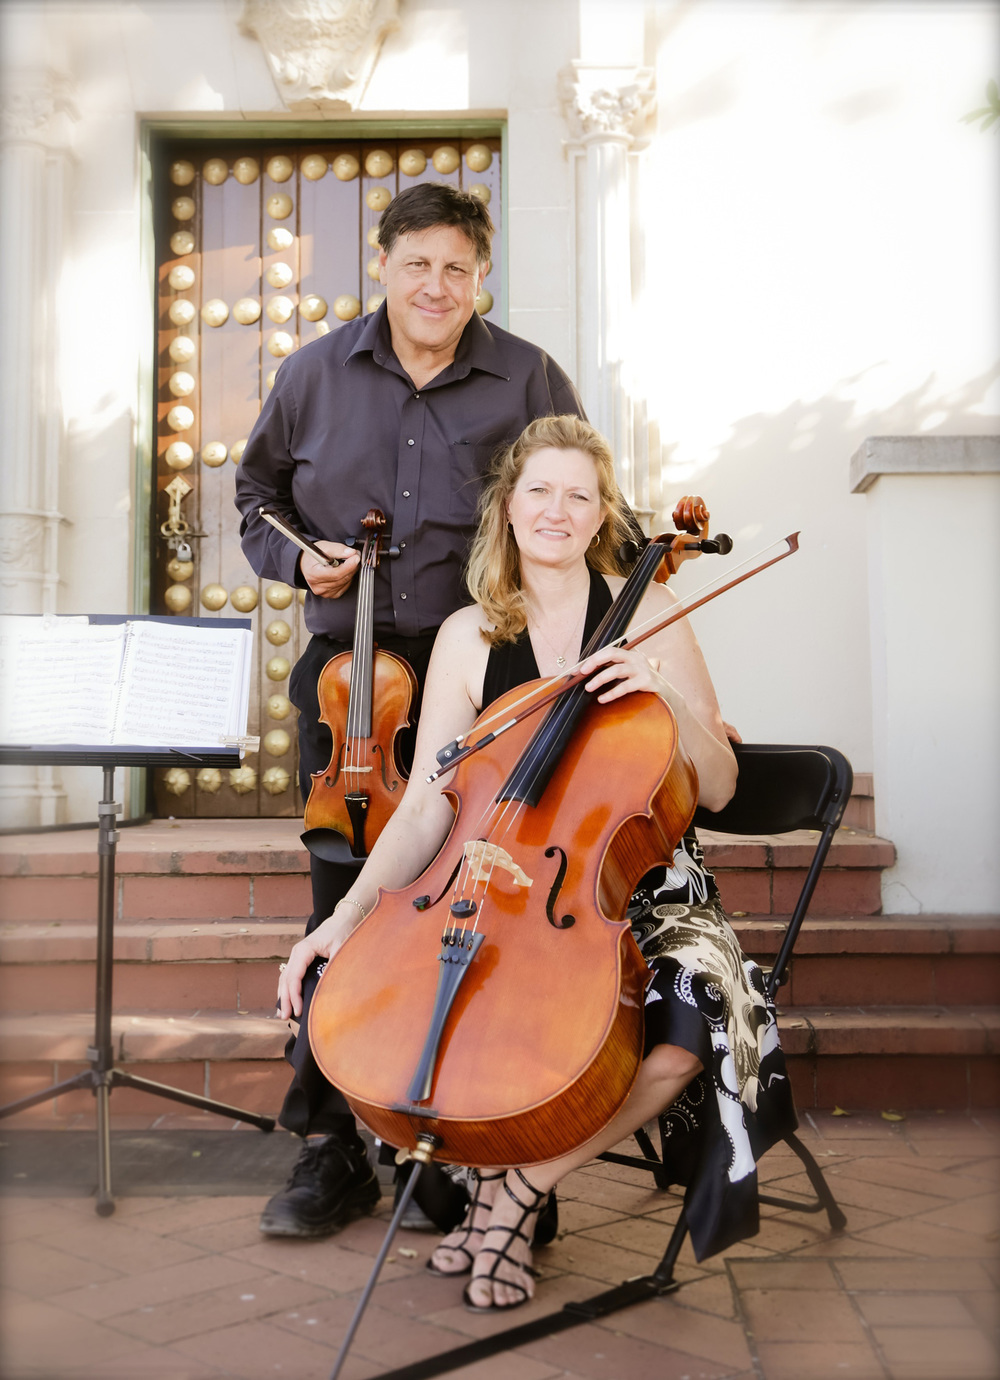 Robert-Lynne-Hearst-Castle-event-music-violin-cello.jpg